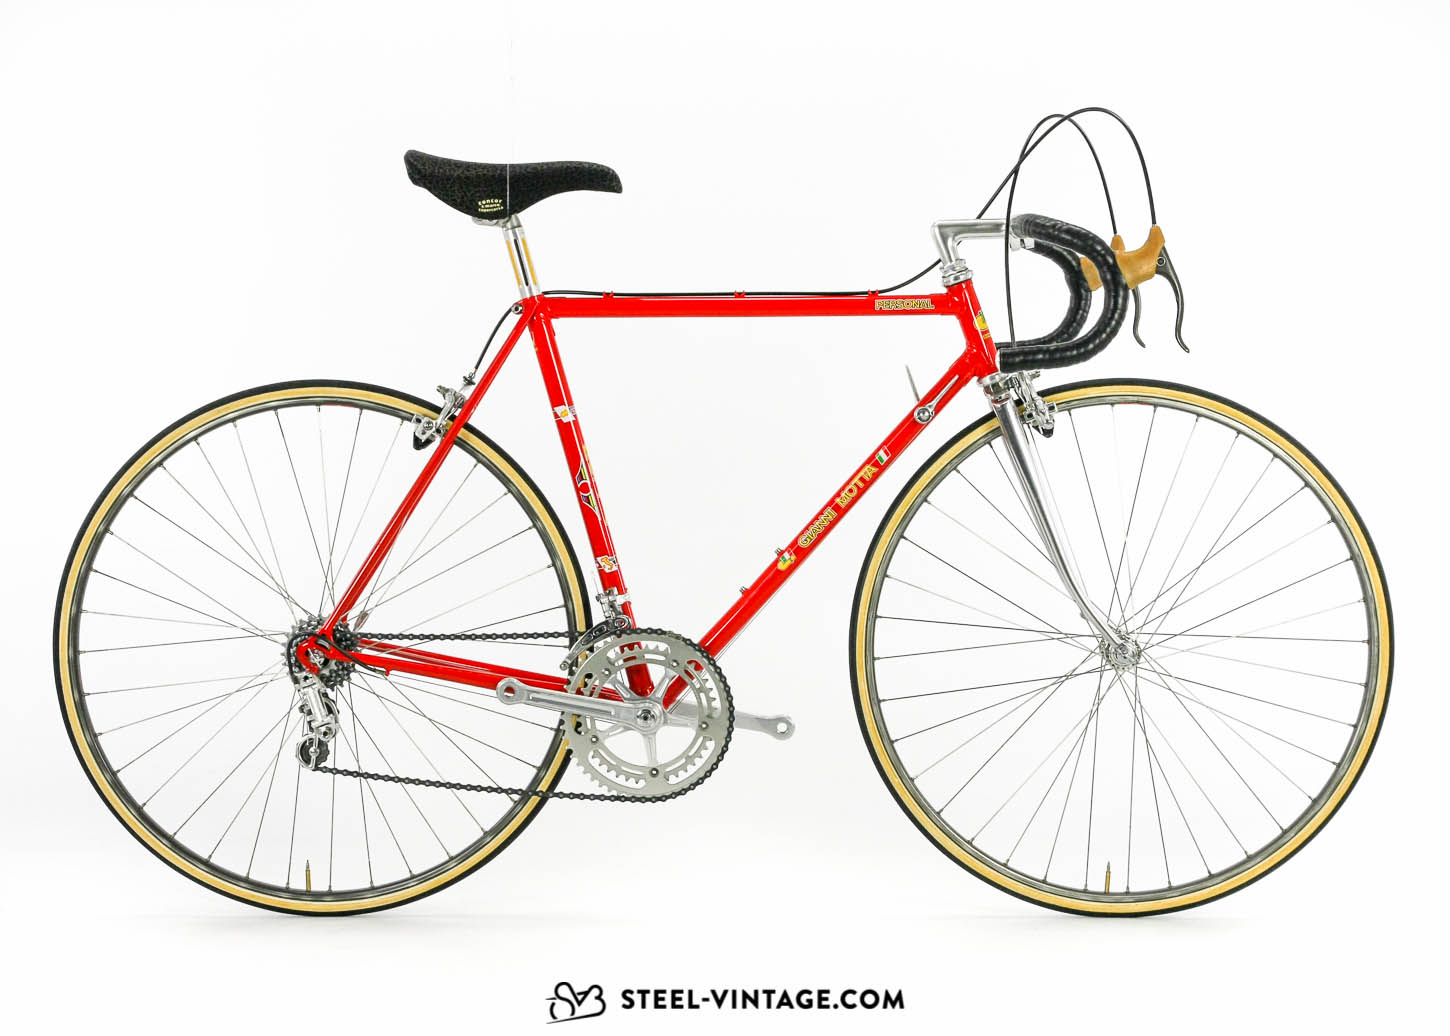 Gianni Motta Personal Eroica Road Bike 1980s